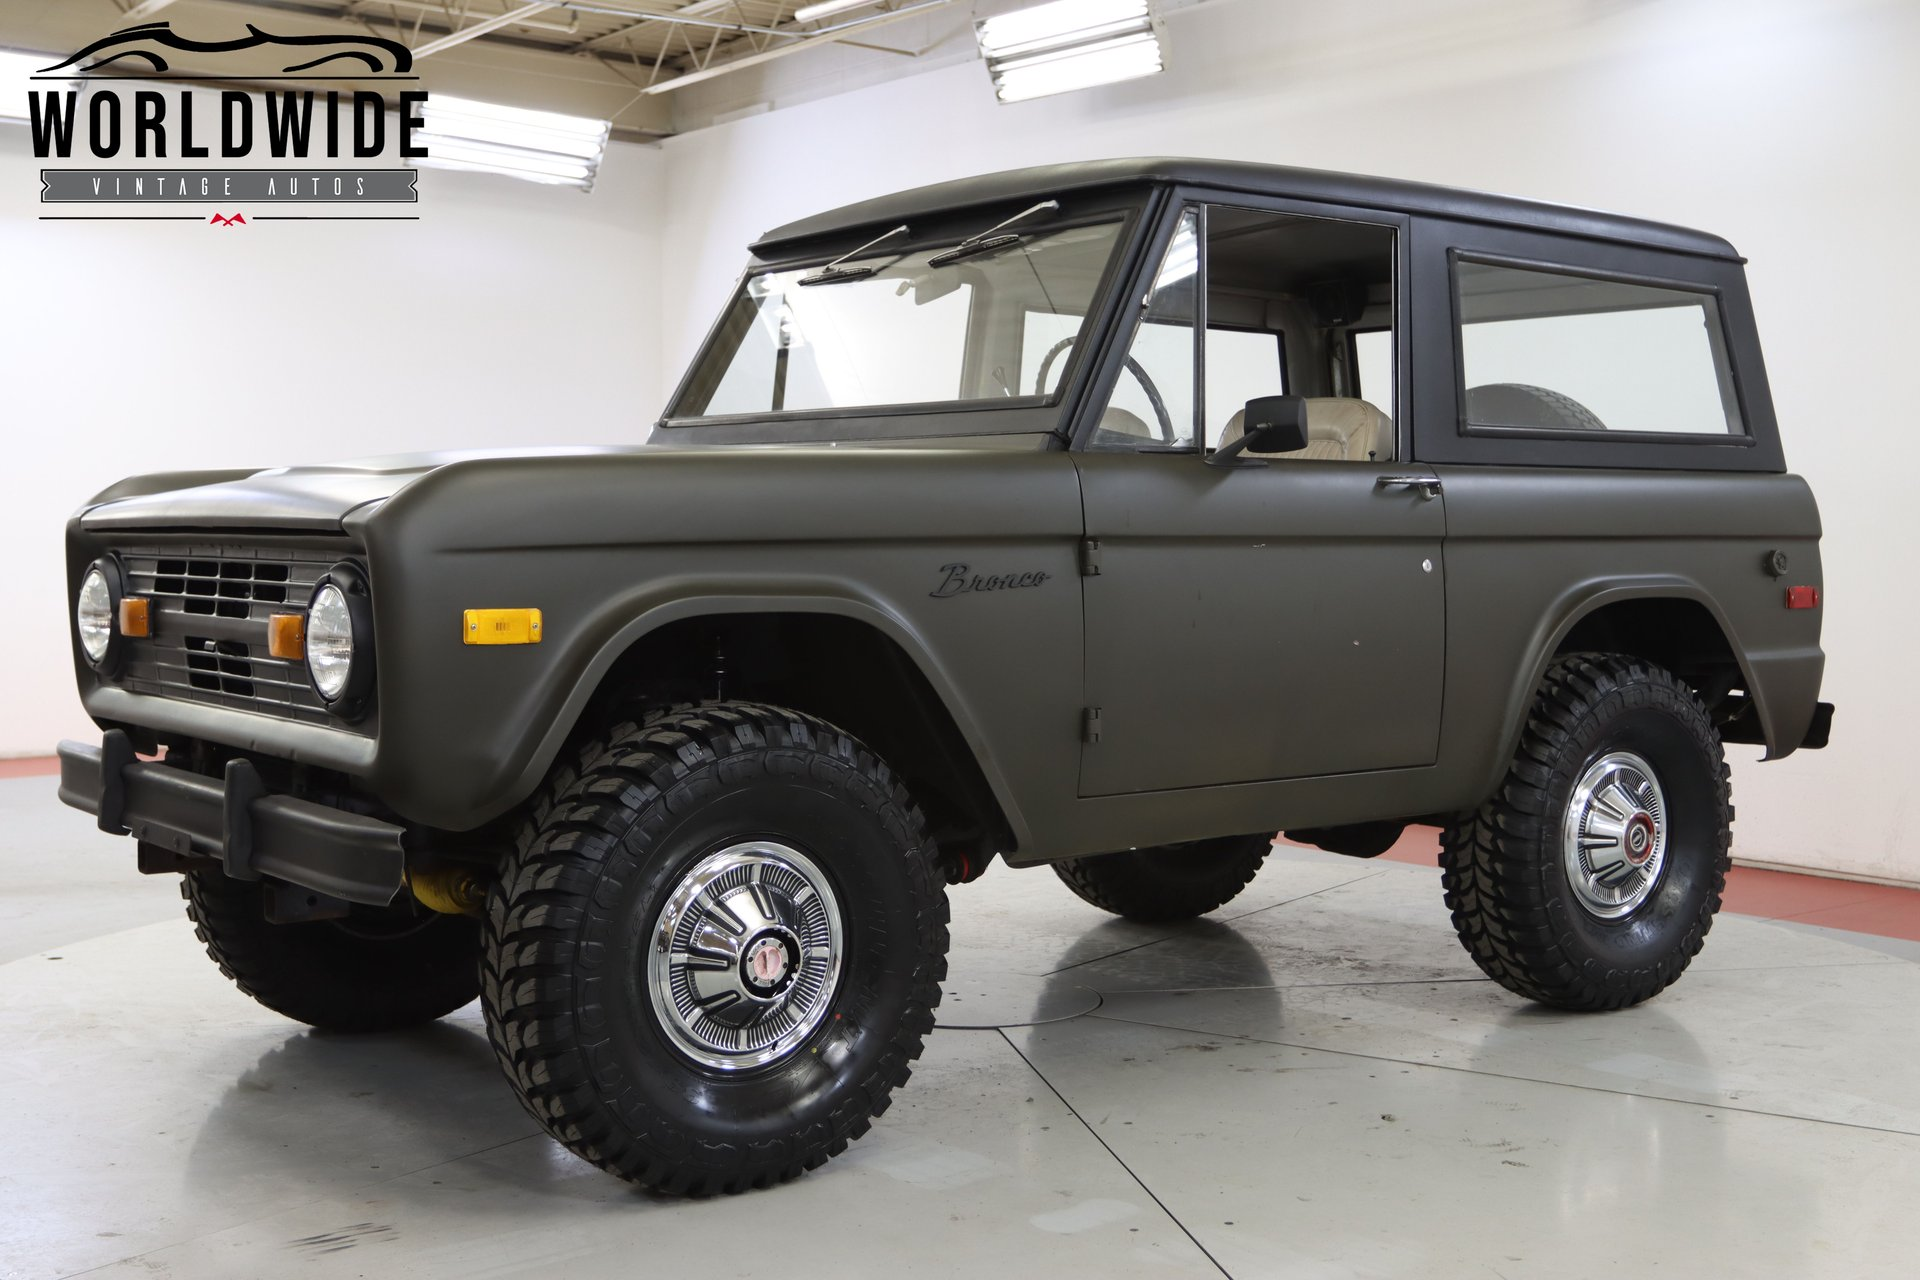 1975 Ford Bronco Worldwide Vintage Autos